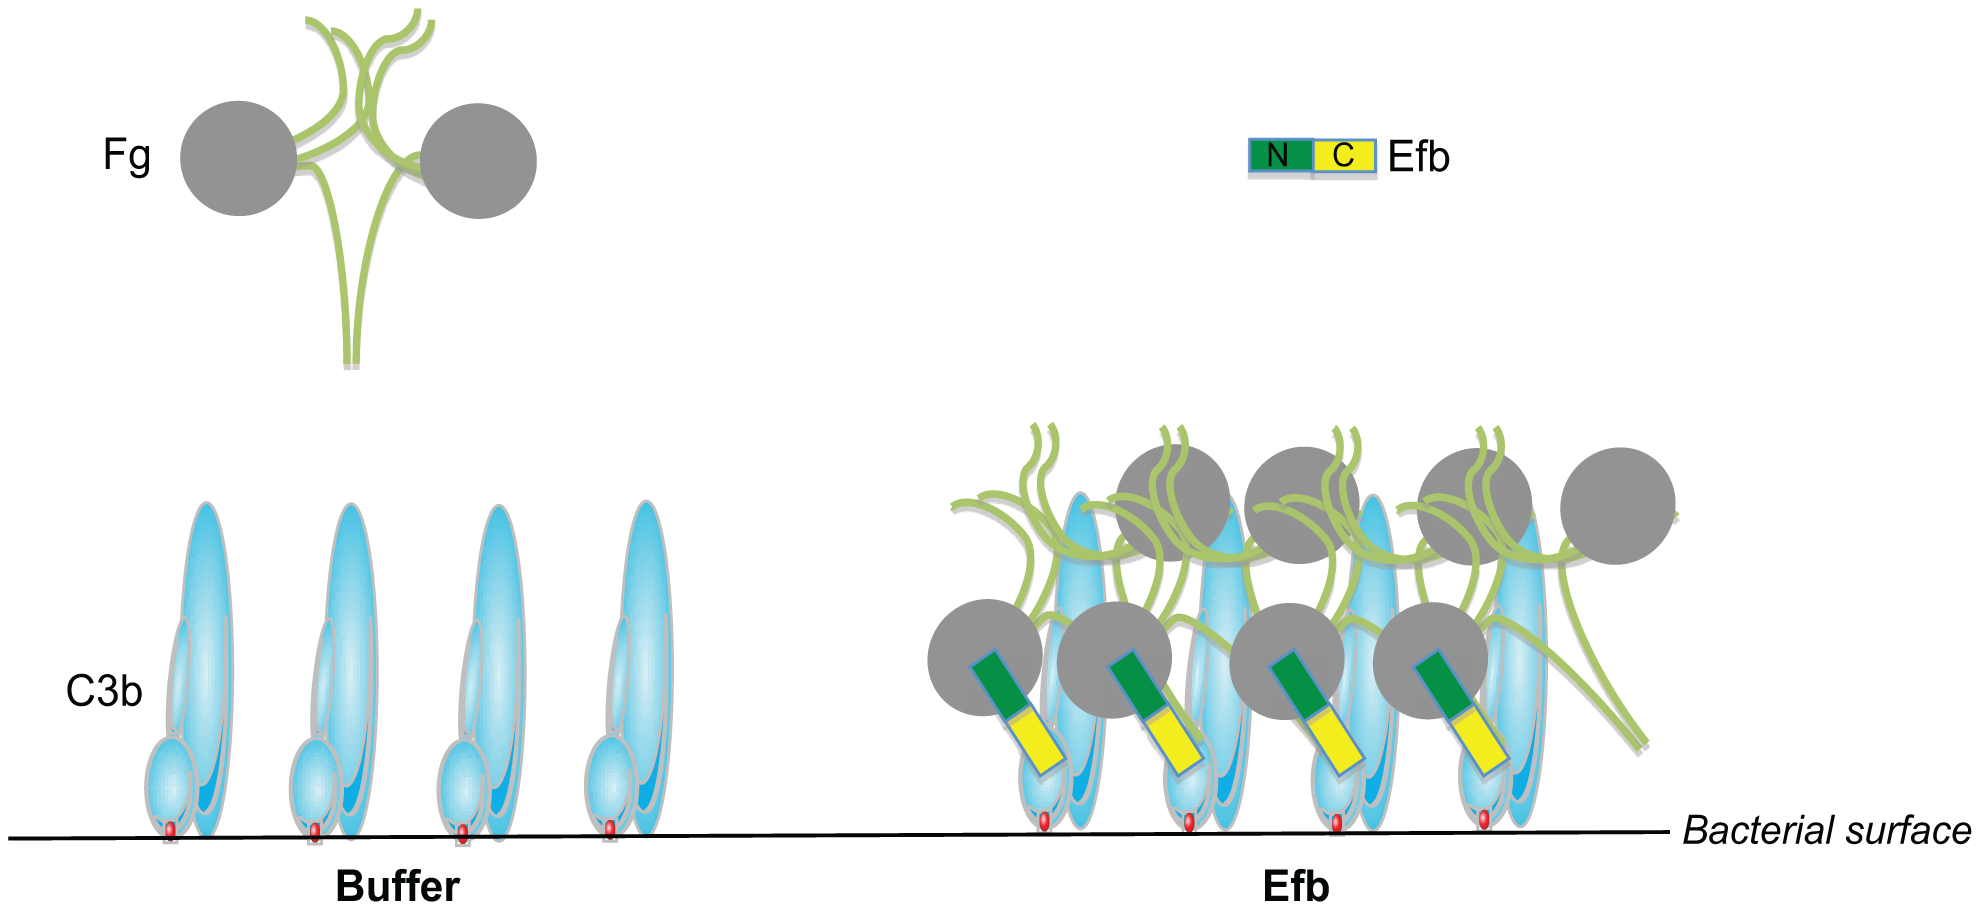 Proposed mechanism for phagocytosis inhibition by Efb.